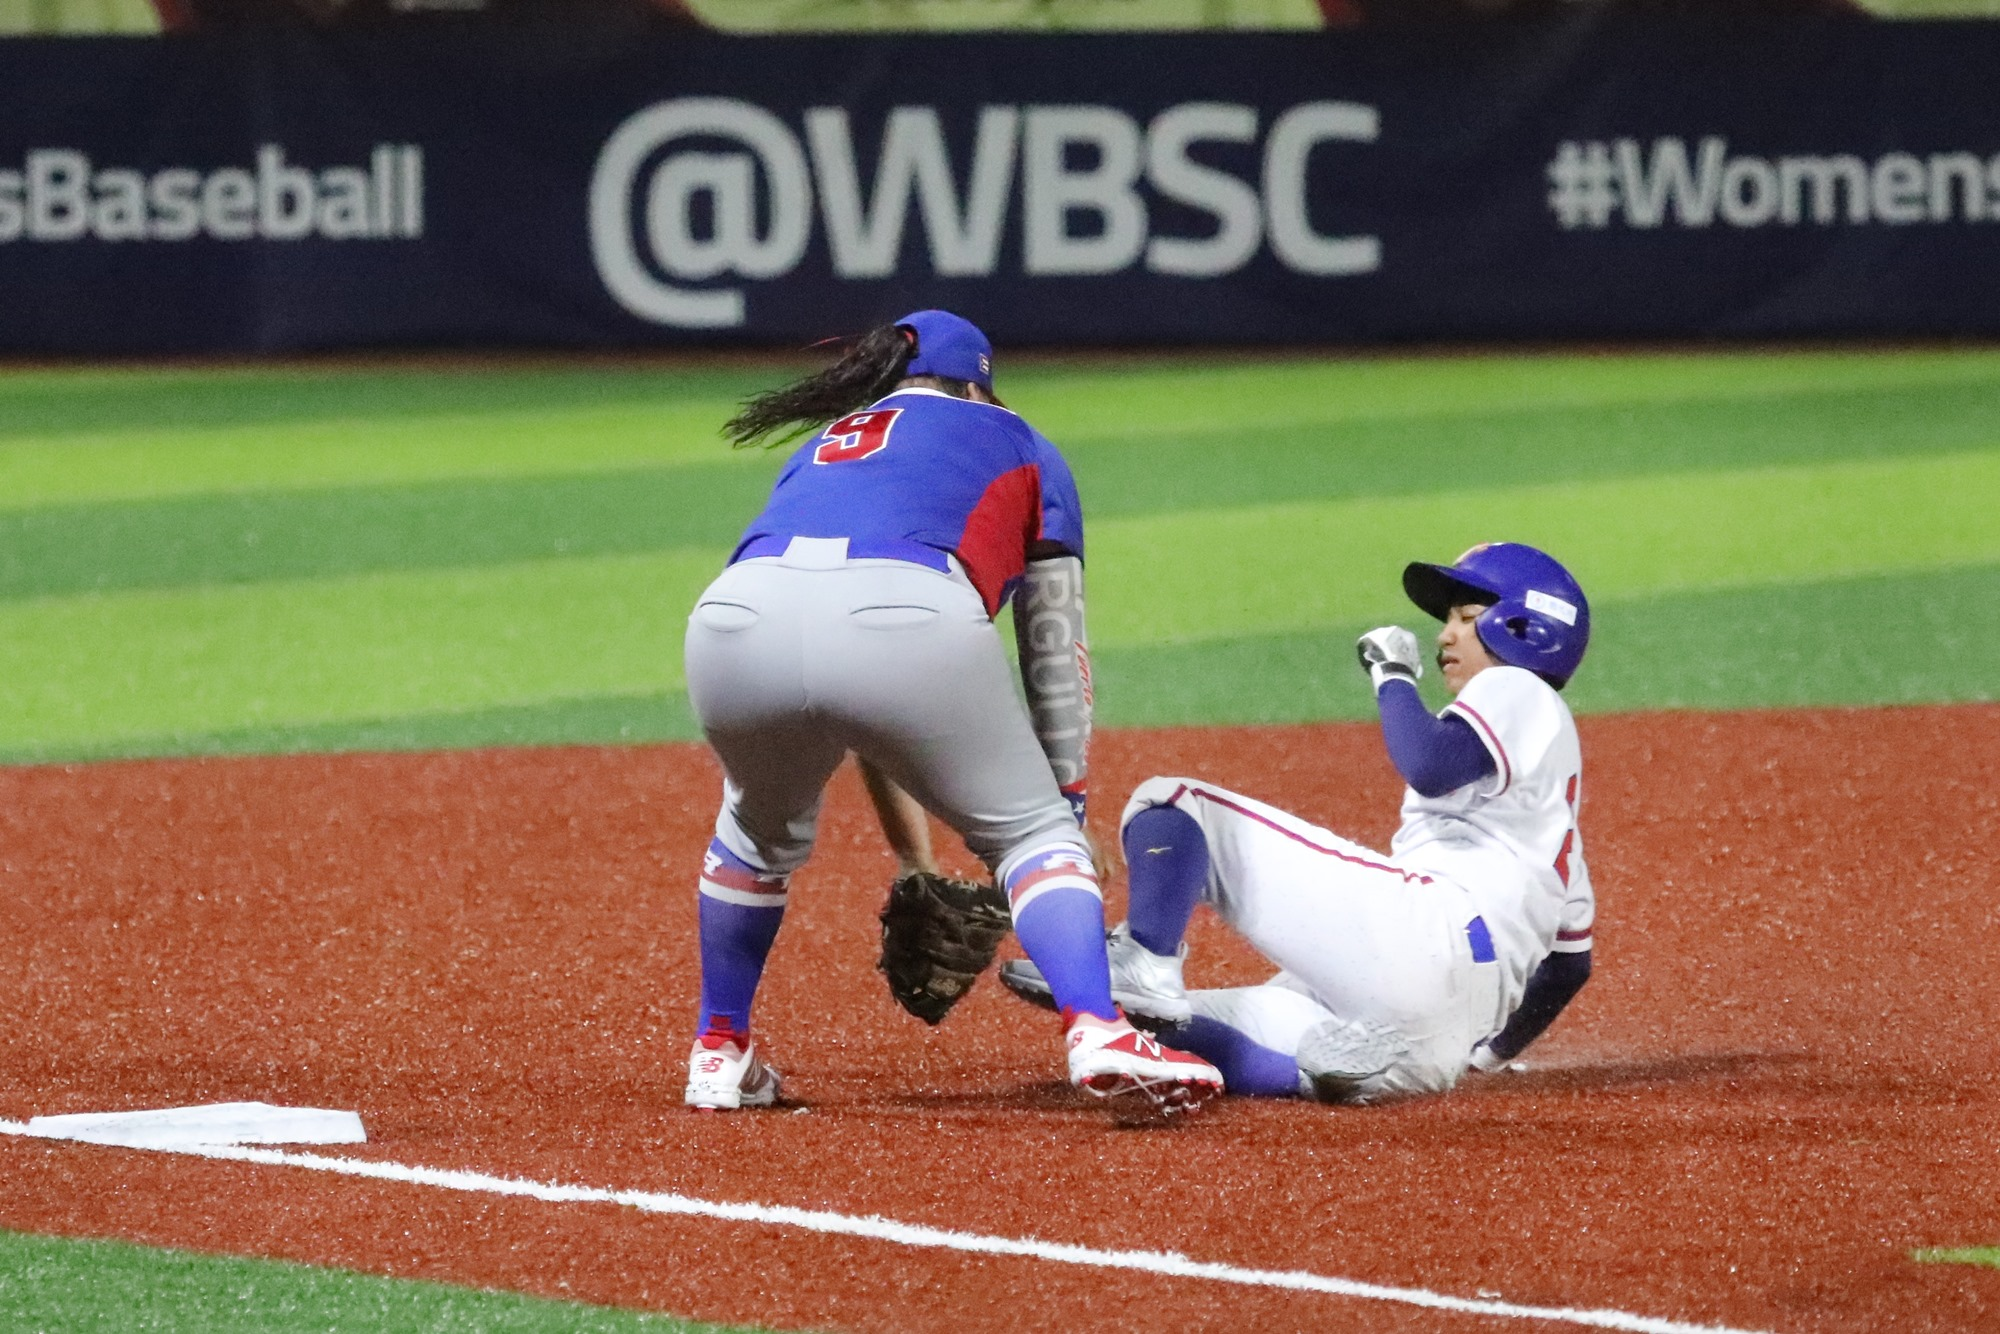 Chinese Taipei tried to play aggressive baseball on the base paths